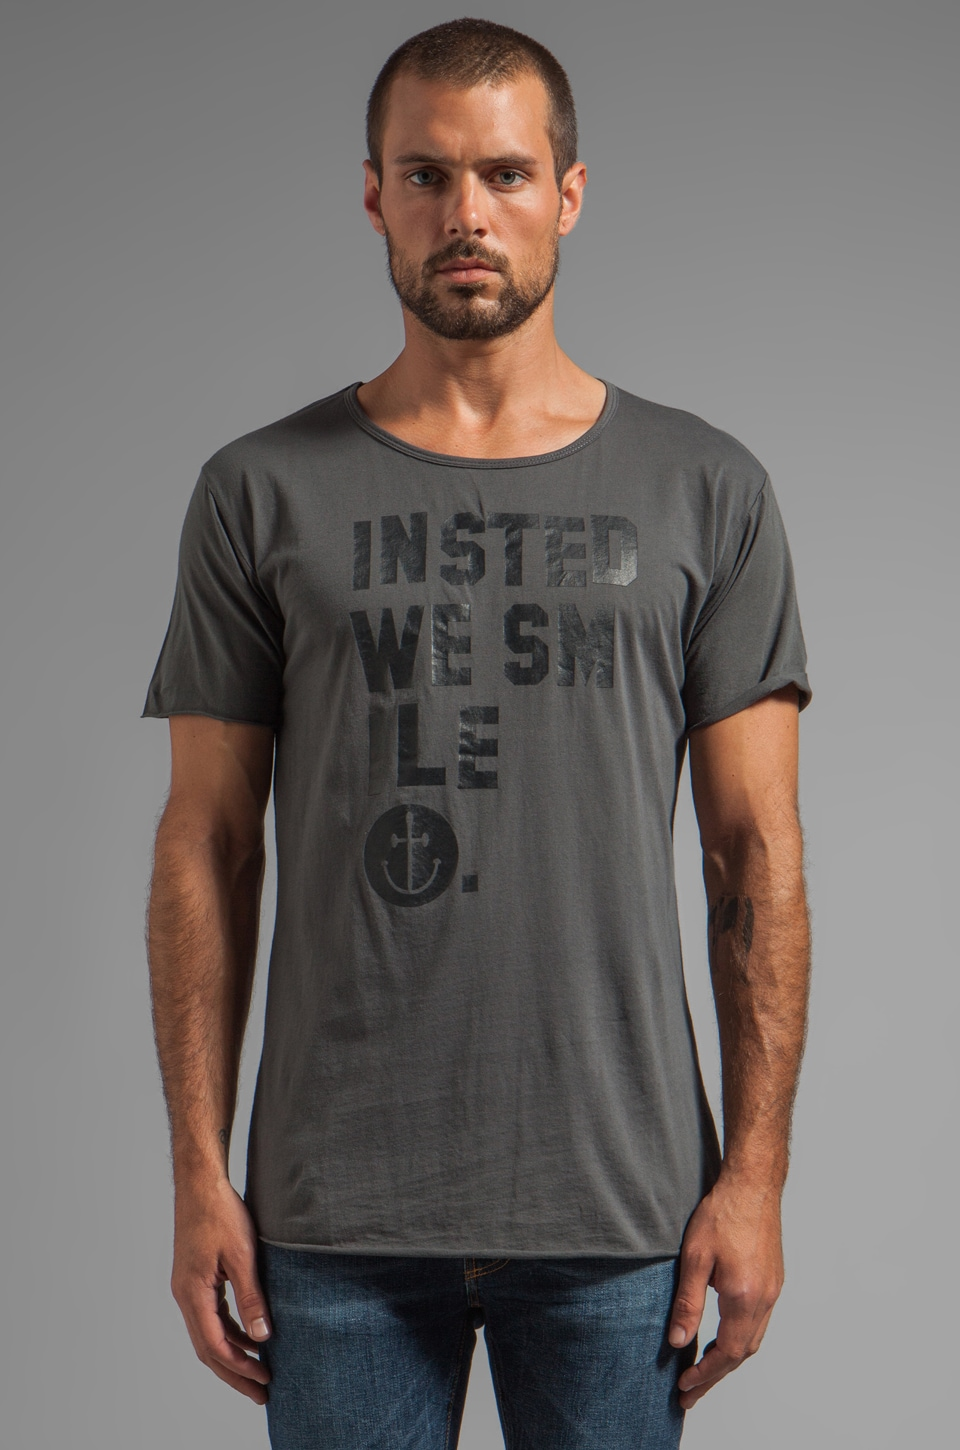 INSTED WE SMILE IWS Smile Tee in Aged Black